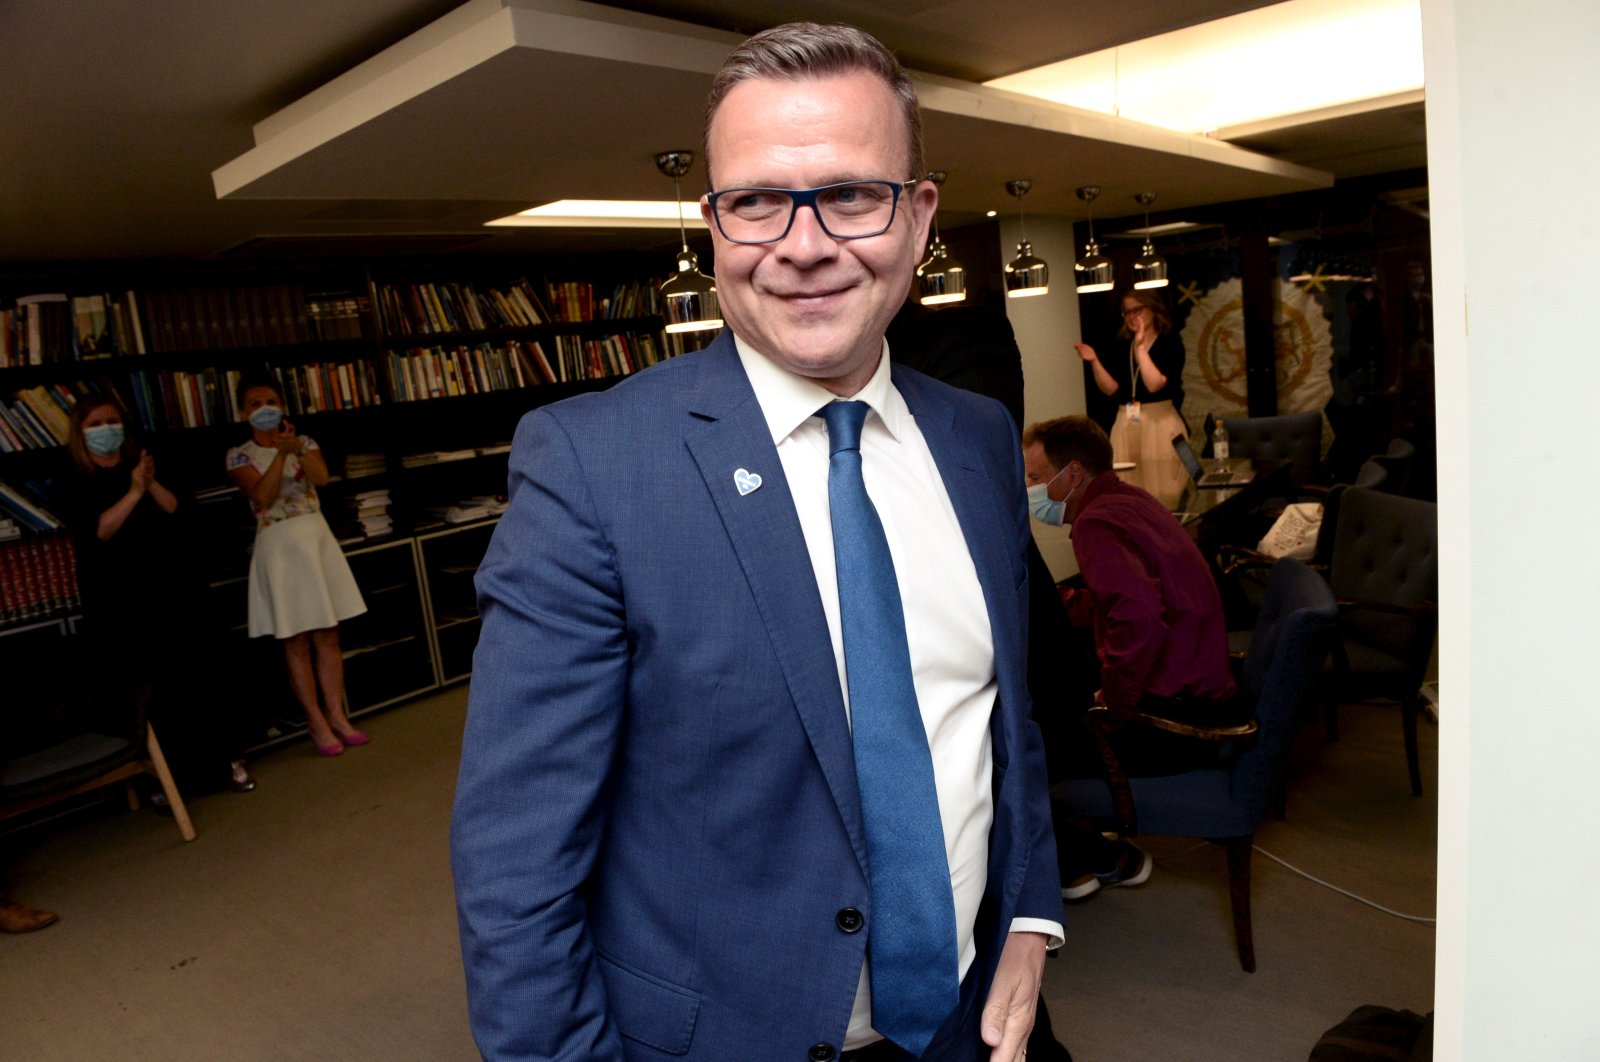 Chairperson of The National Coalition Party Petteri Orpo celebrates winning the municipal elections, Helsinki, Finland, June 13, 2021. (Reuters Photo)